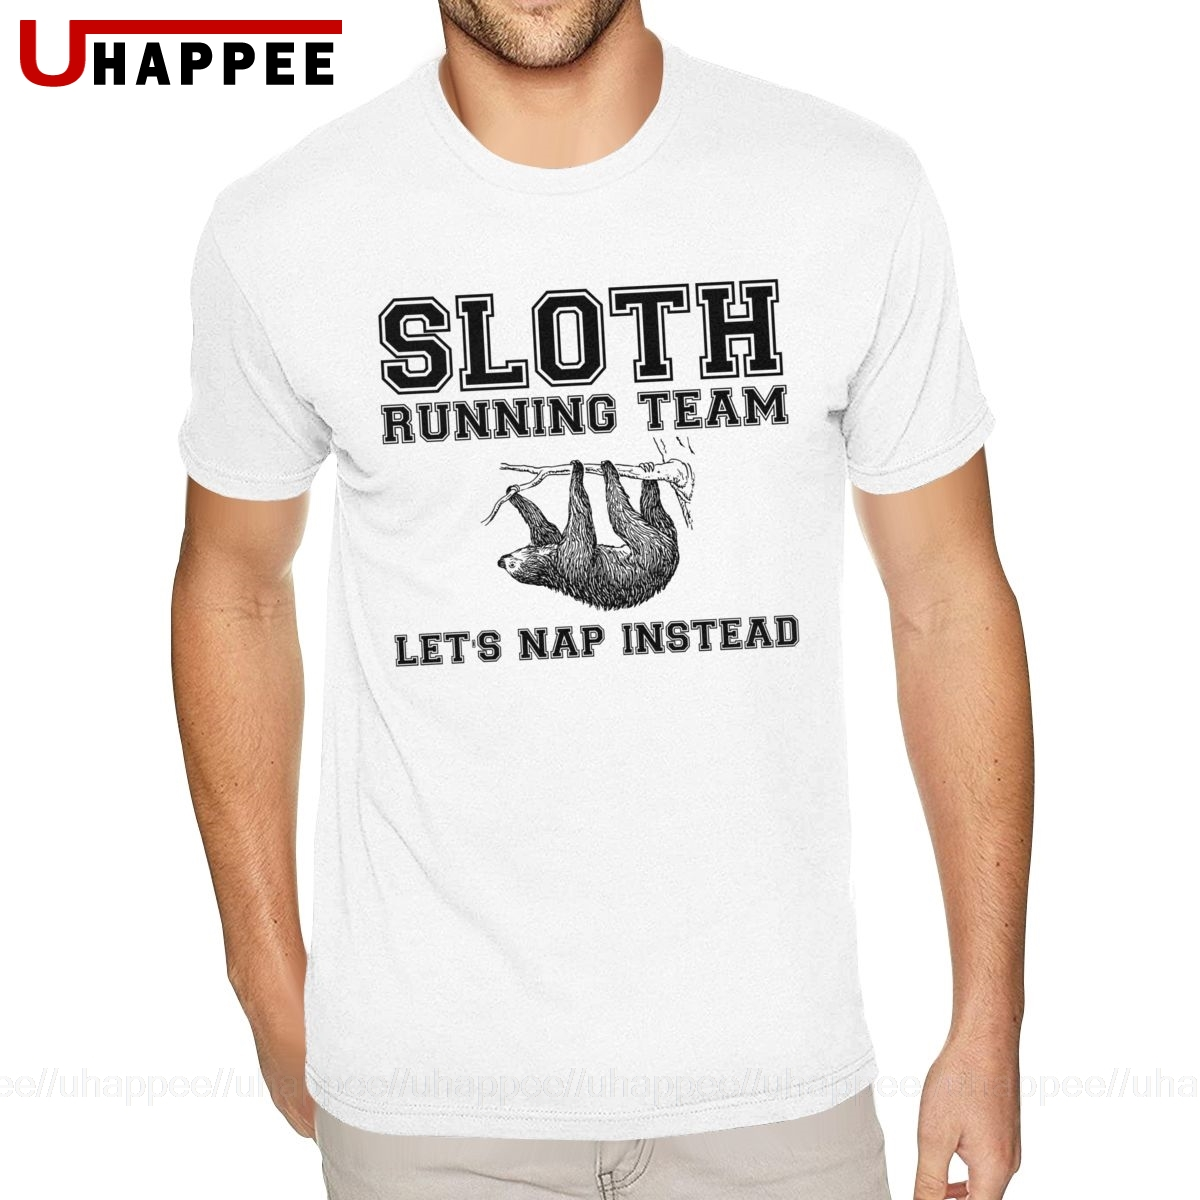 Sloth Running Team Tee Young Boy Fashion Designer Tee For Men Short Sleeve Discount Brand Clothing T Shirts Aliexpress